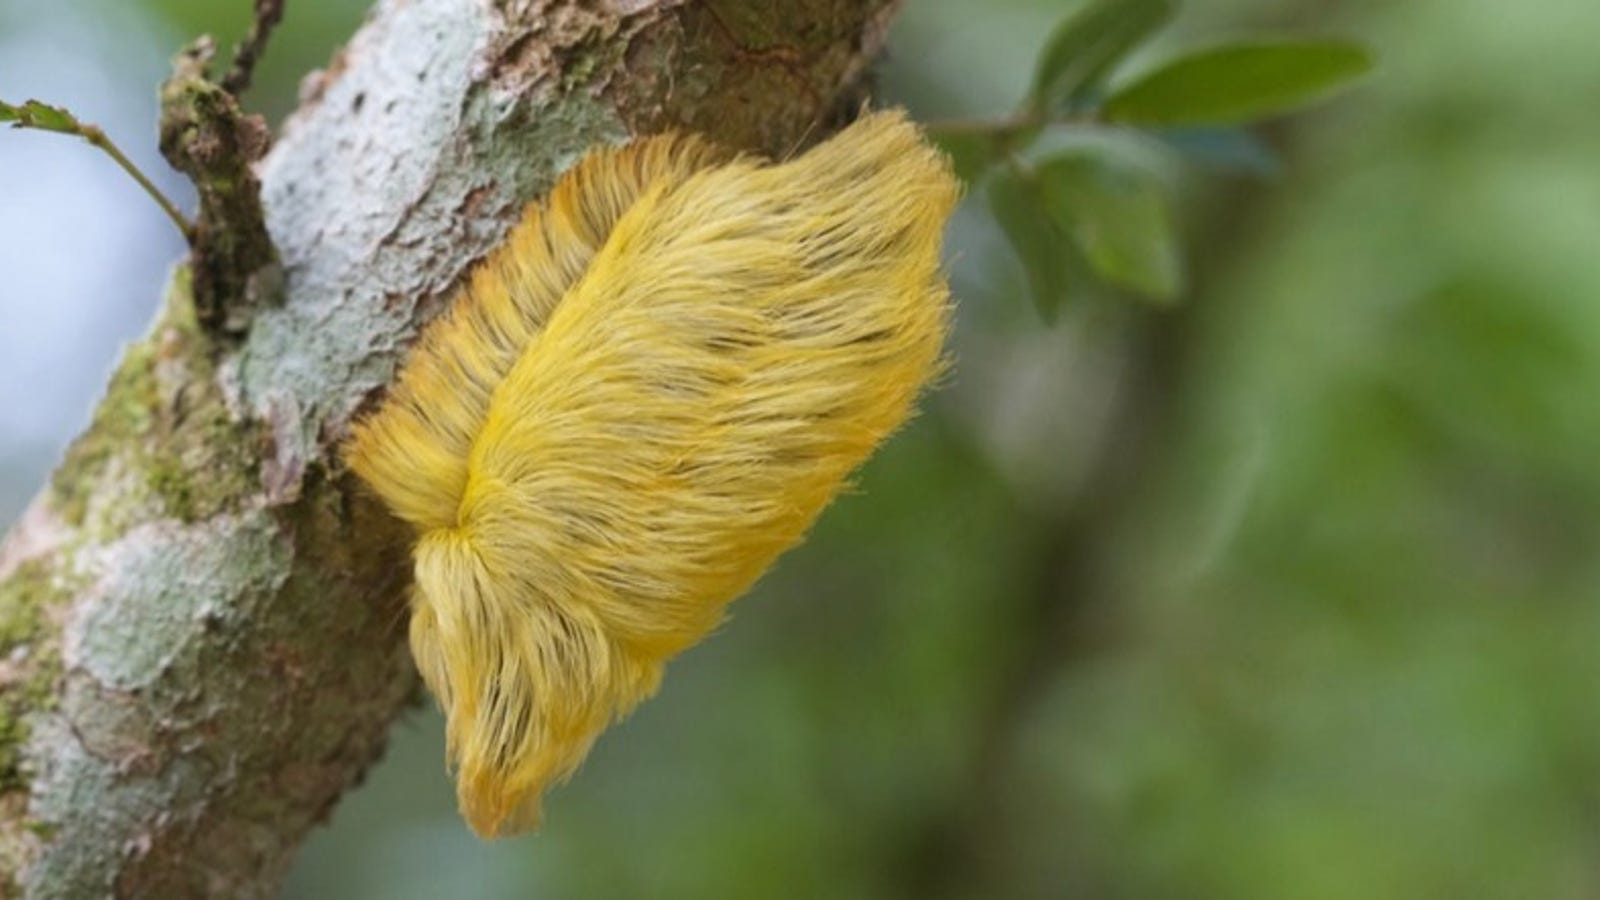 This Amazonian Caterpillar Sports Donald Trump's Hair